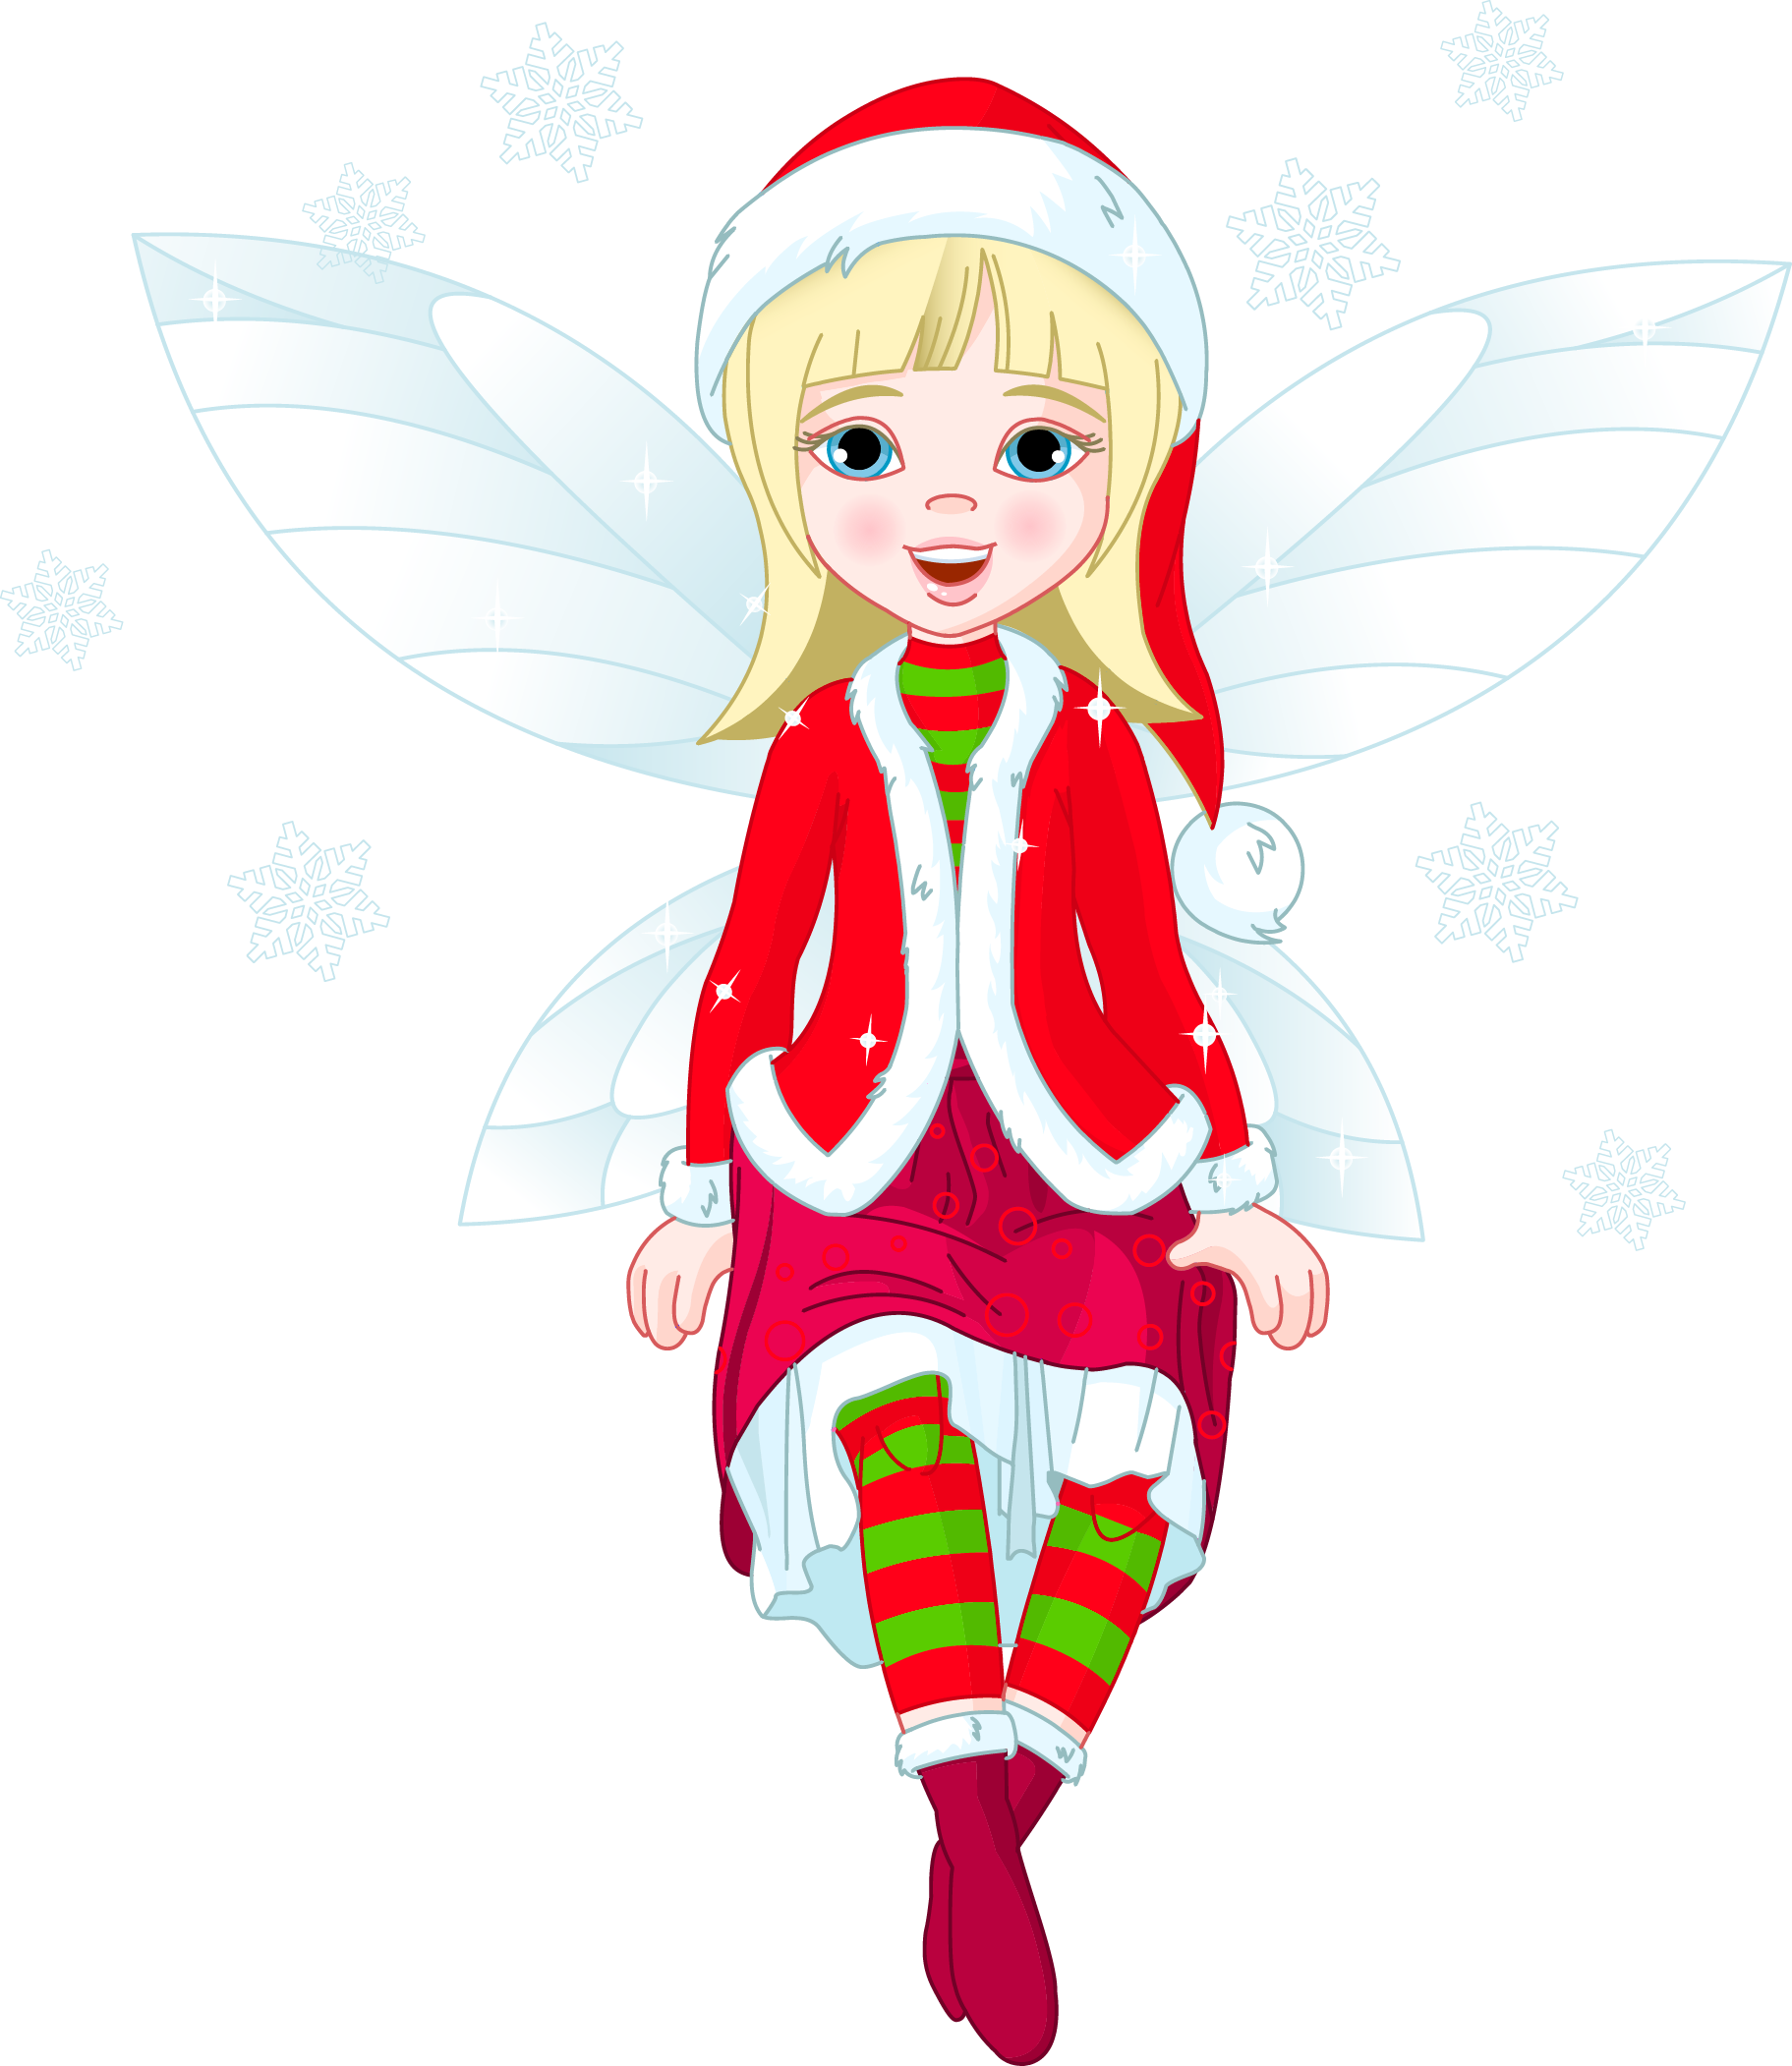 Clipart christmas elf clip art royalty free download Transparent Christmas Elf PNG Clipart | Gallery Yopriceville - High ... clip art royalty free download